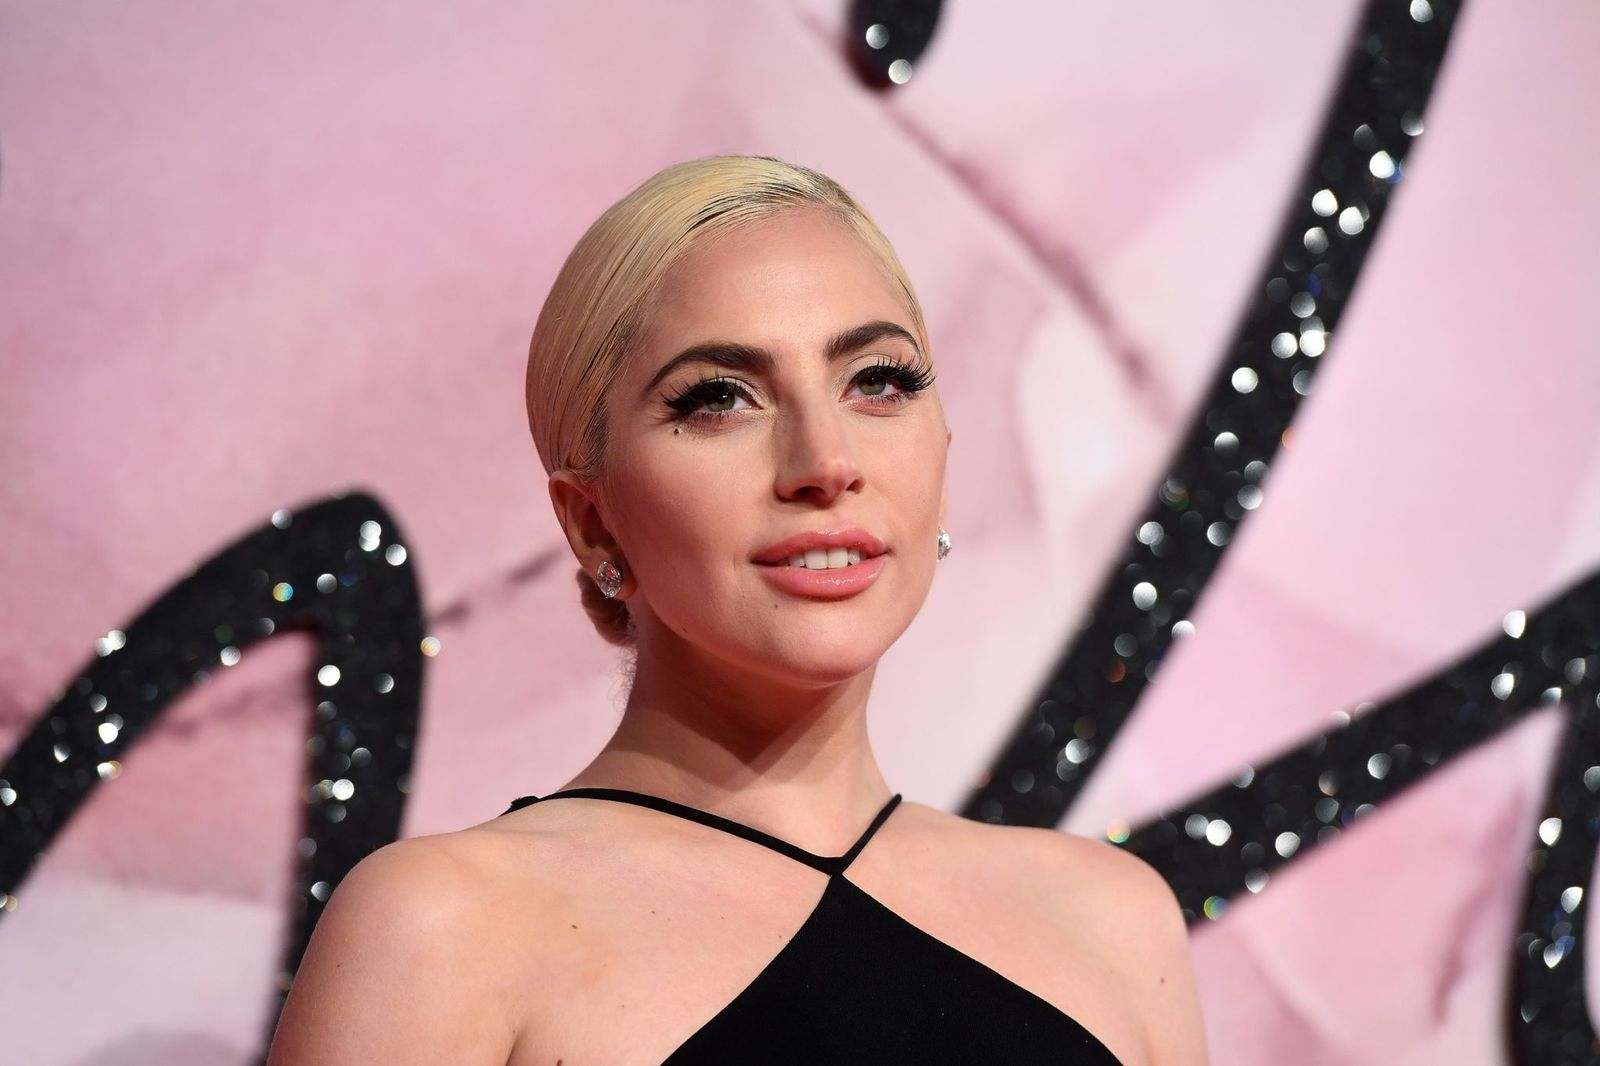 Lady Gaga at The Fashion Awards 2016 on December 5, 2016 | Photo: Getty Images